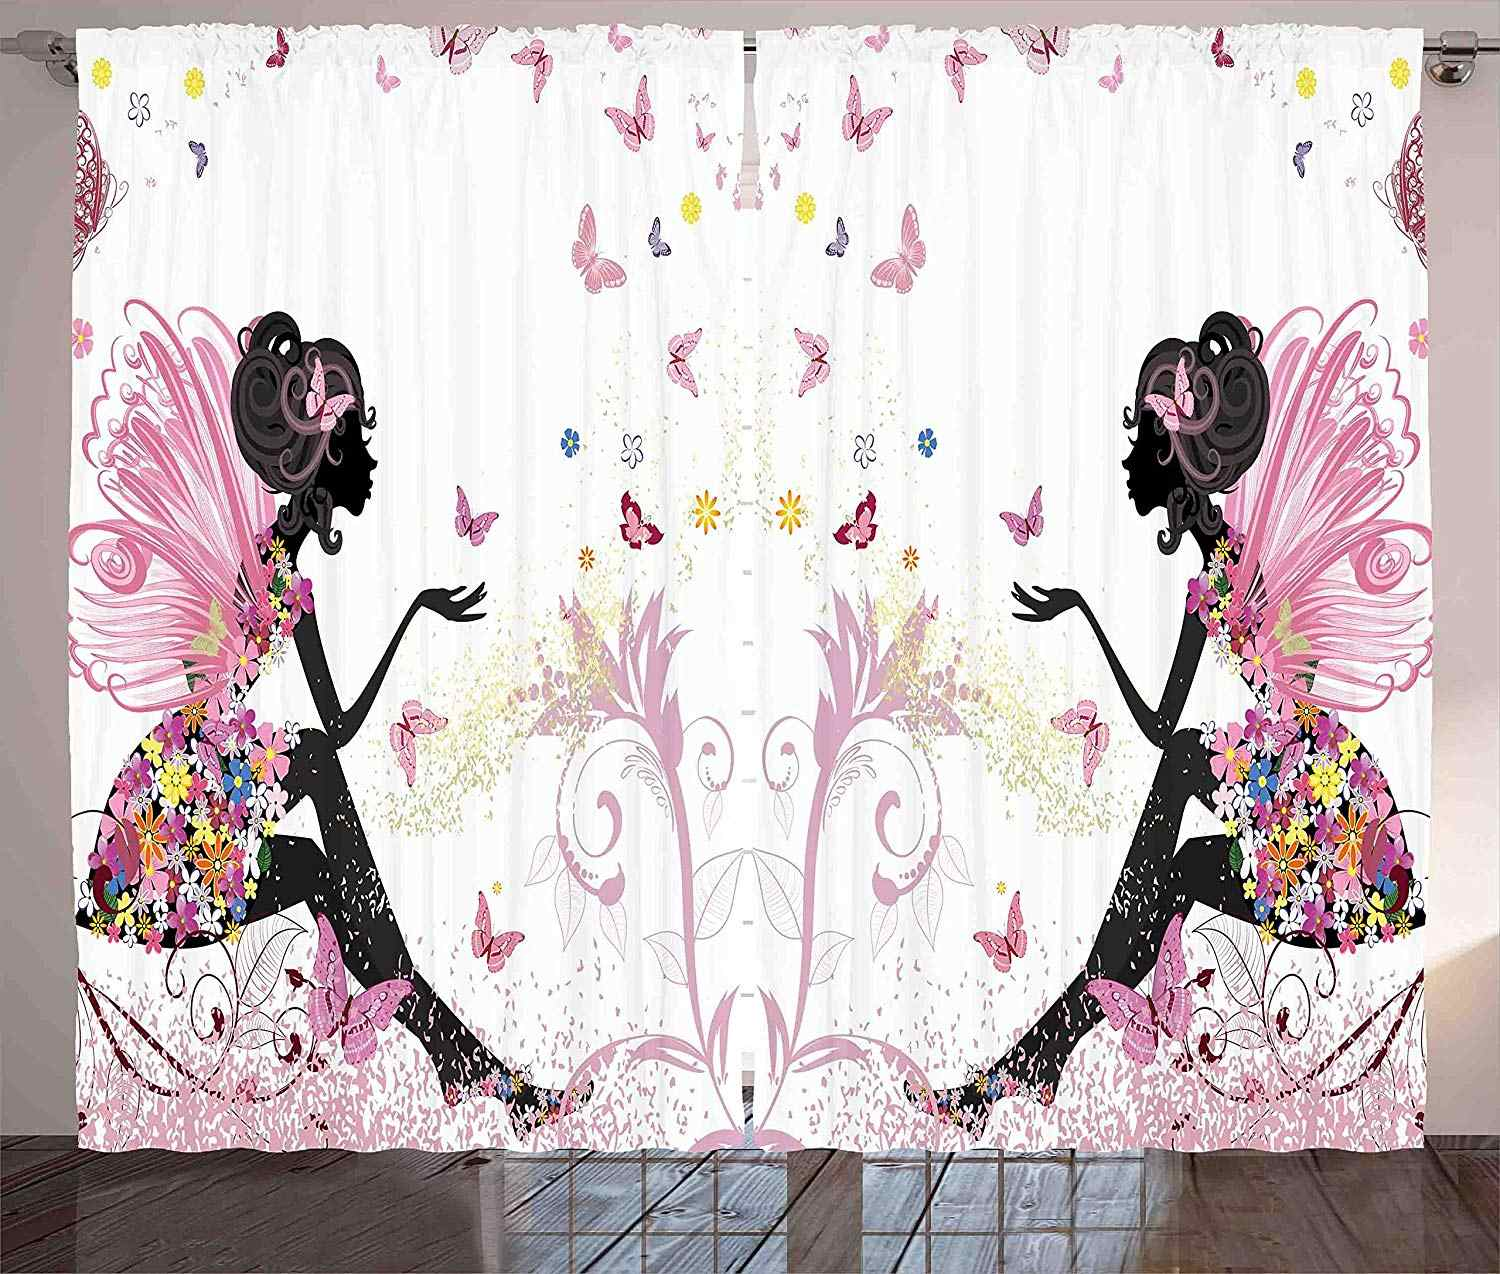 Girls Curtains Fairy Girl with Wings in a Floral Dress Magical Fantasy Garden Flying Butterflies Living Room Bedroom Window Drap